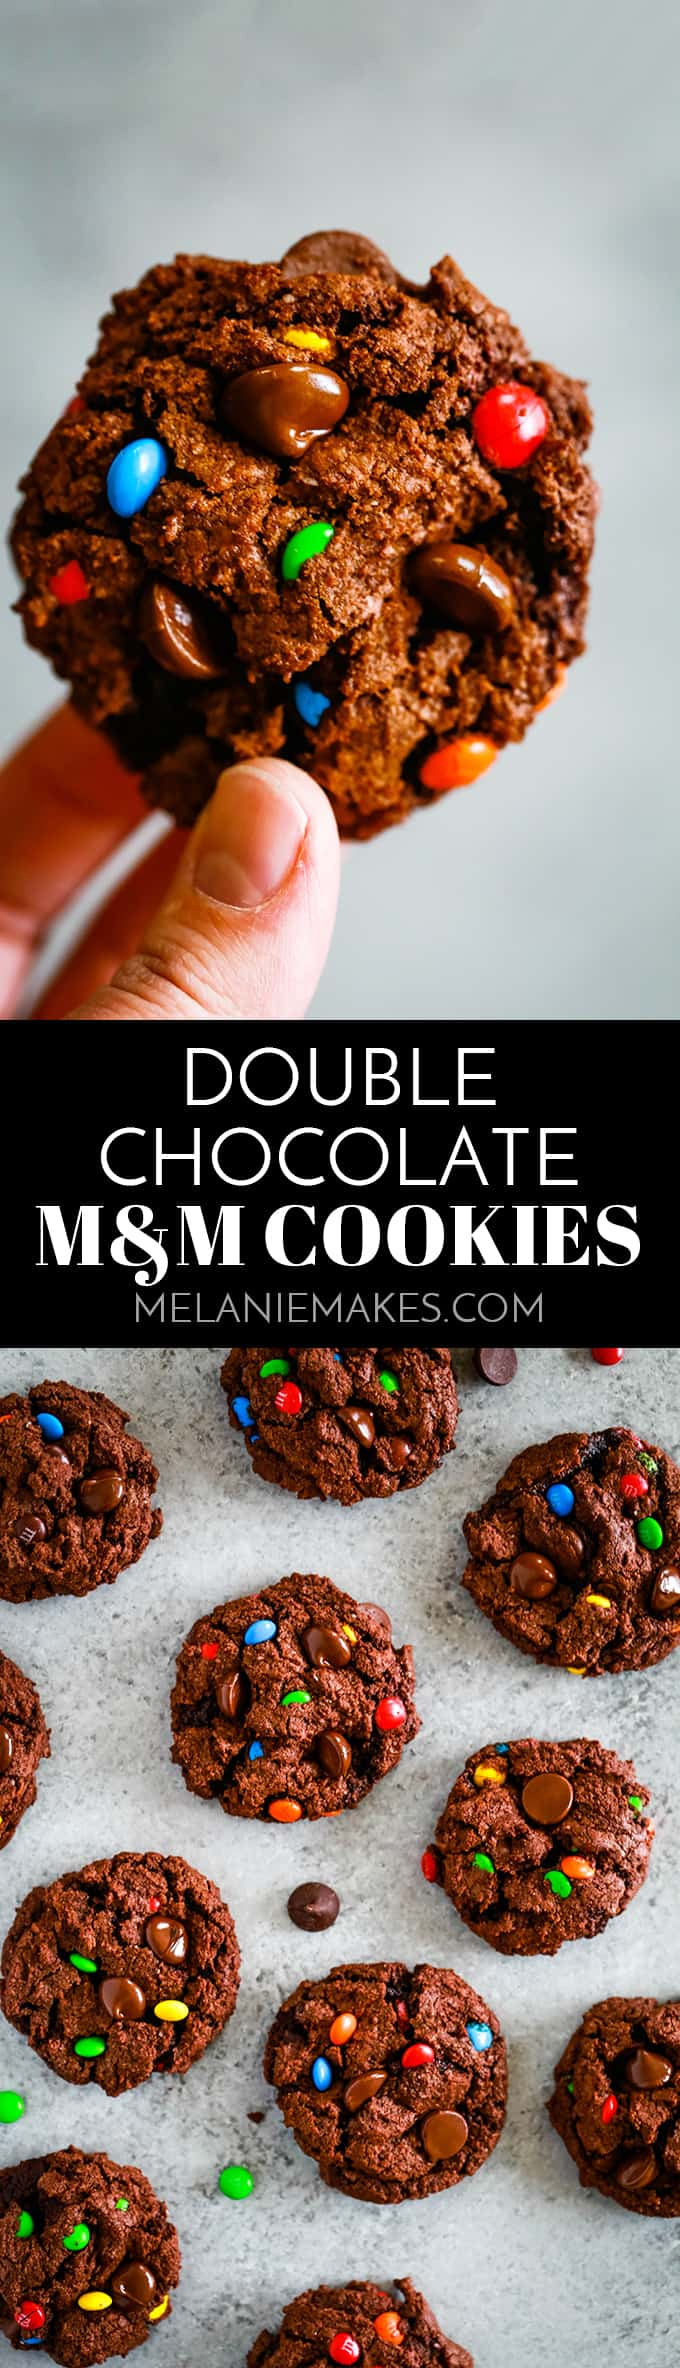 A cocoa infused chocolate chip cookie dough batter is bedazzled with dark chocolate chips and M&Ms candy to make these amazing Double Chocolate M&M Cookies. #cookies #candy #desserts #chocolate #easyrecipe